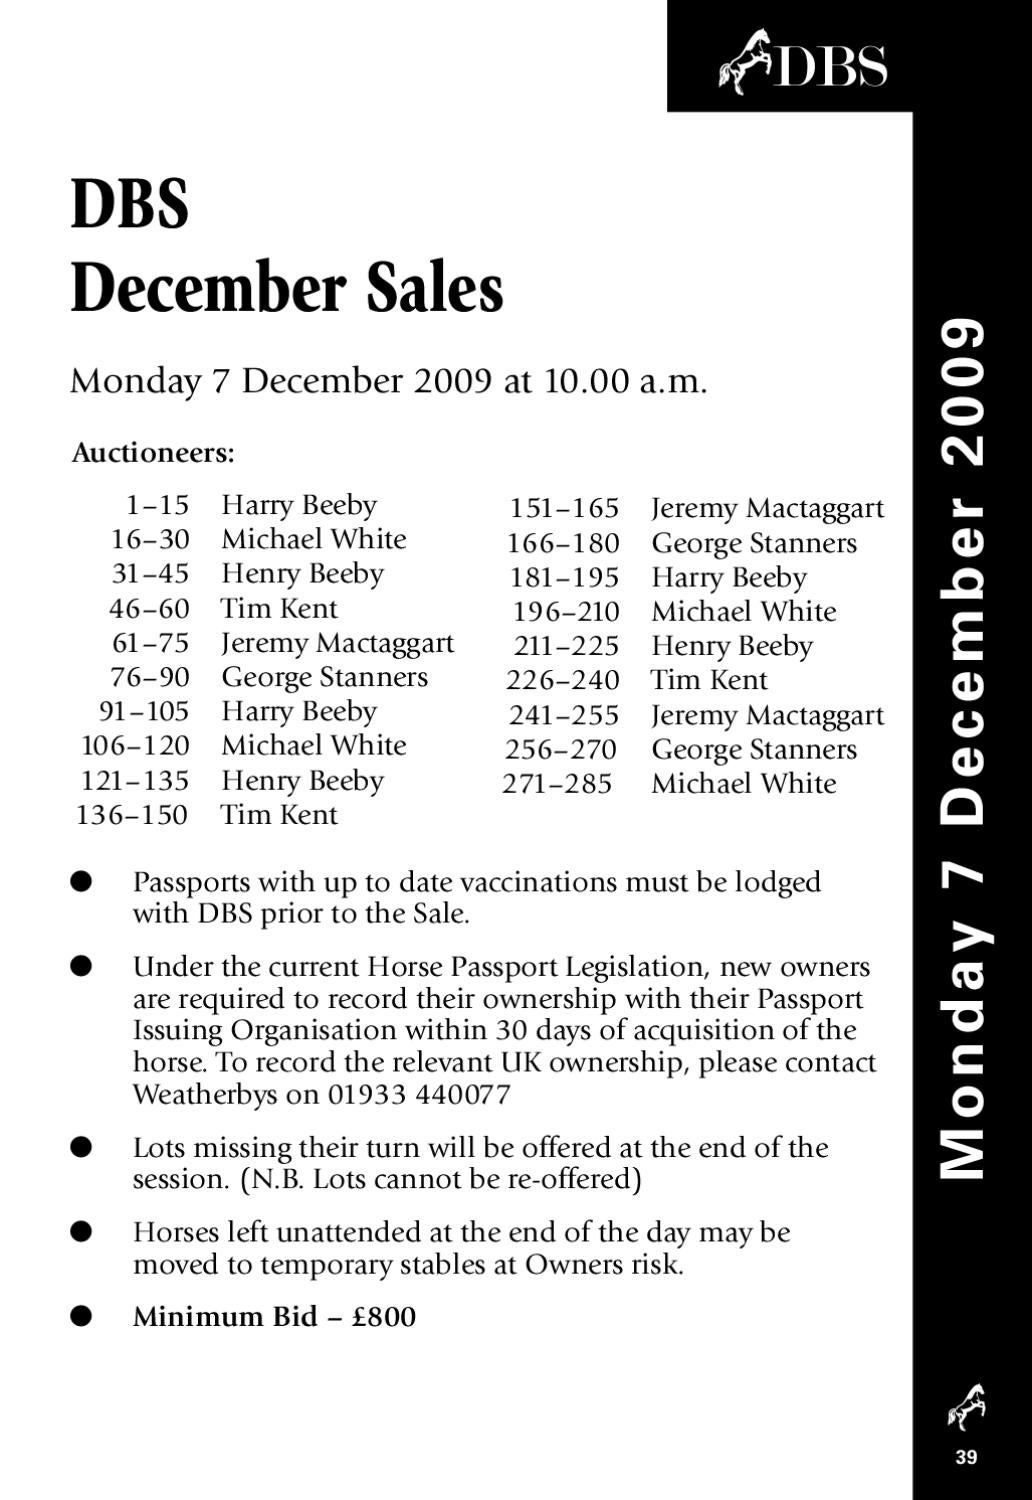 DBS_2009_december_sales by Goffs issuu